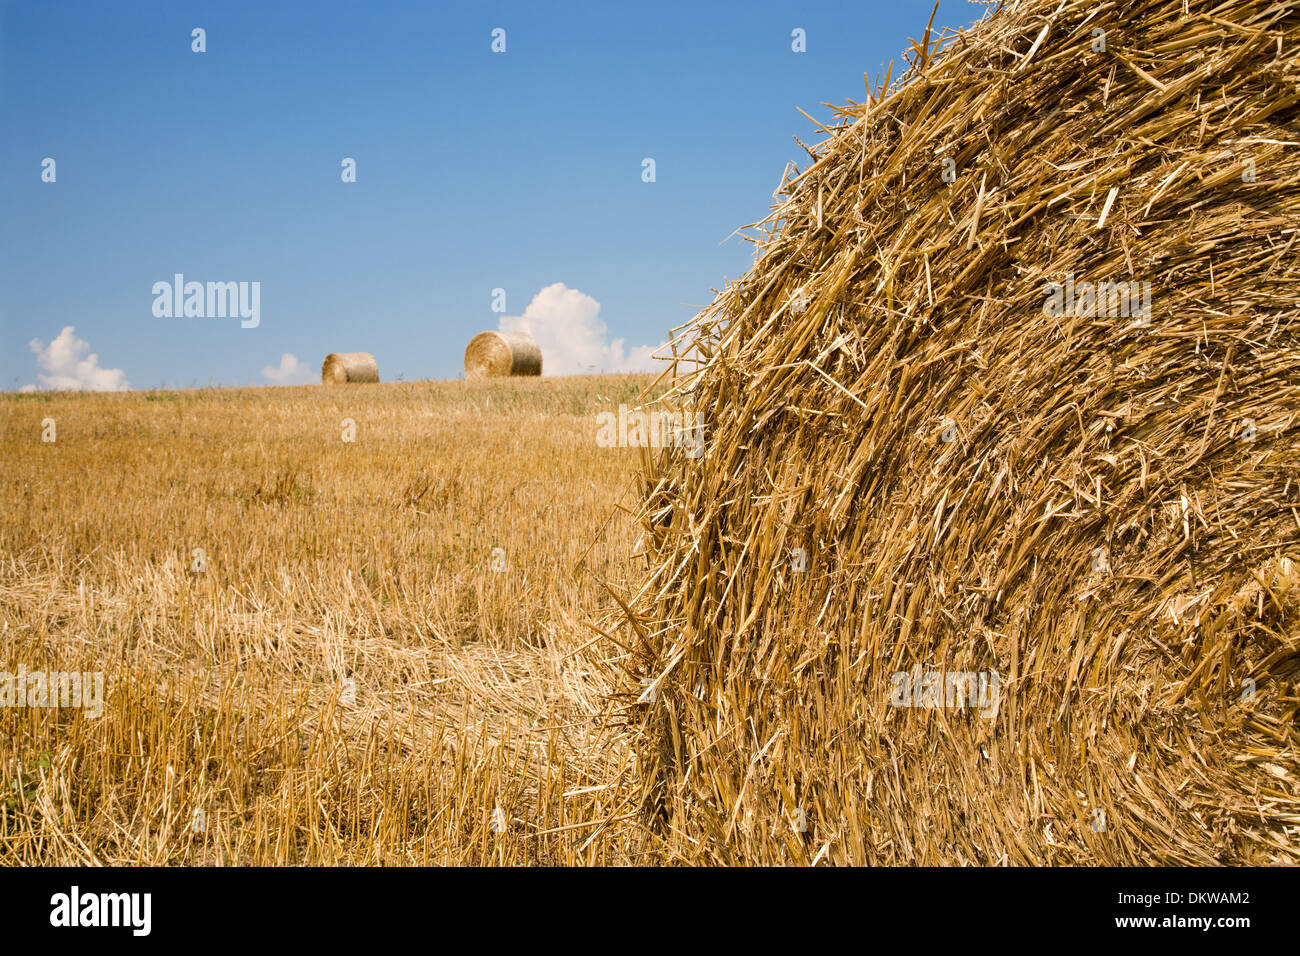 bale of the straw and the sky - Stock Image